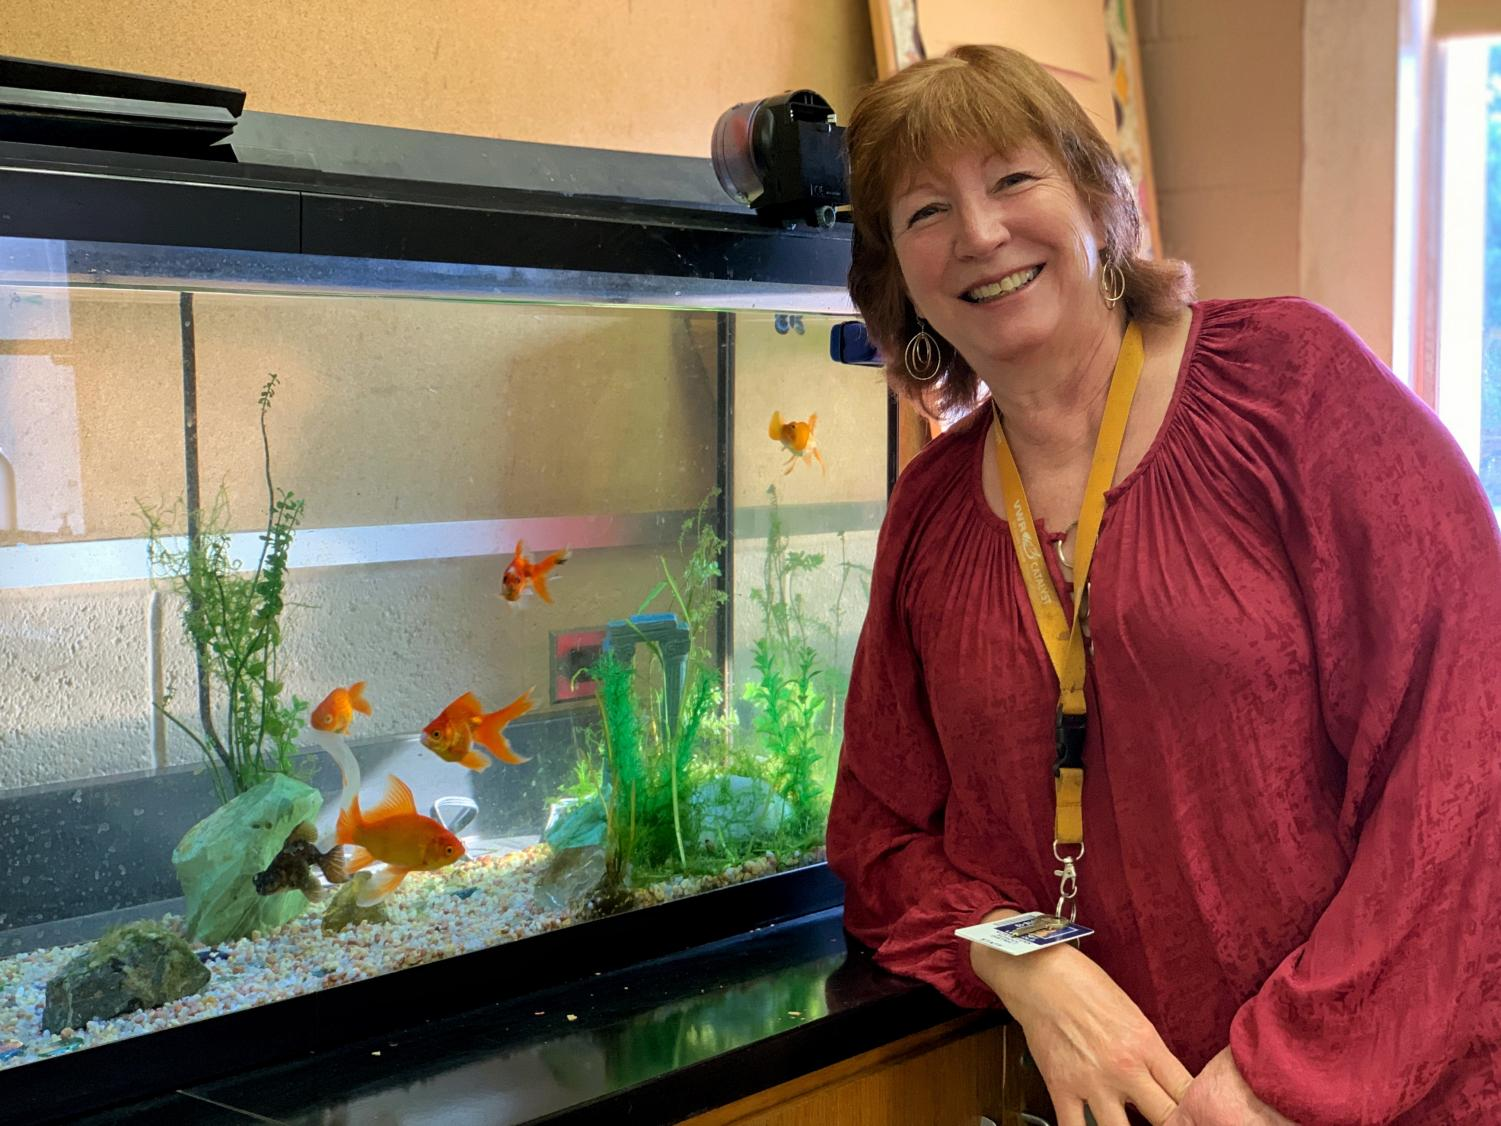 Biology teacher Dr. Leithold will retire after teaching in the North Penn School District for over 30 years.